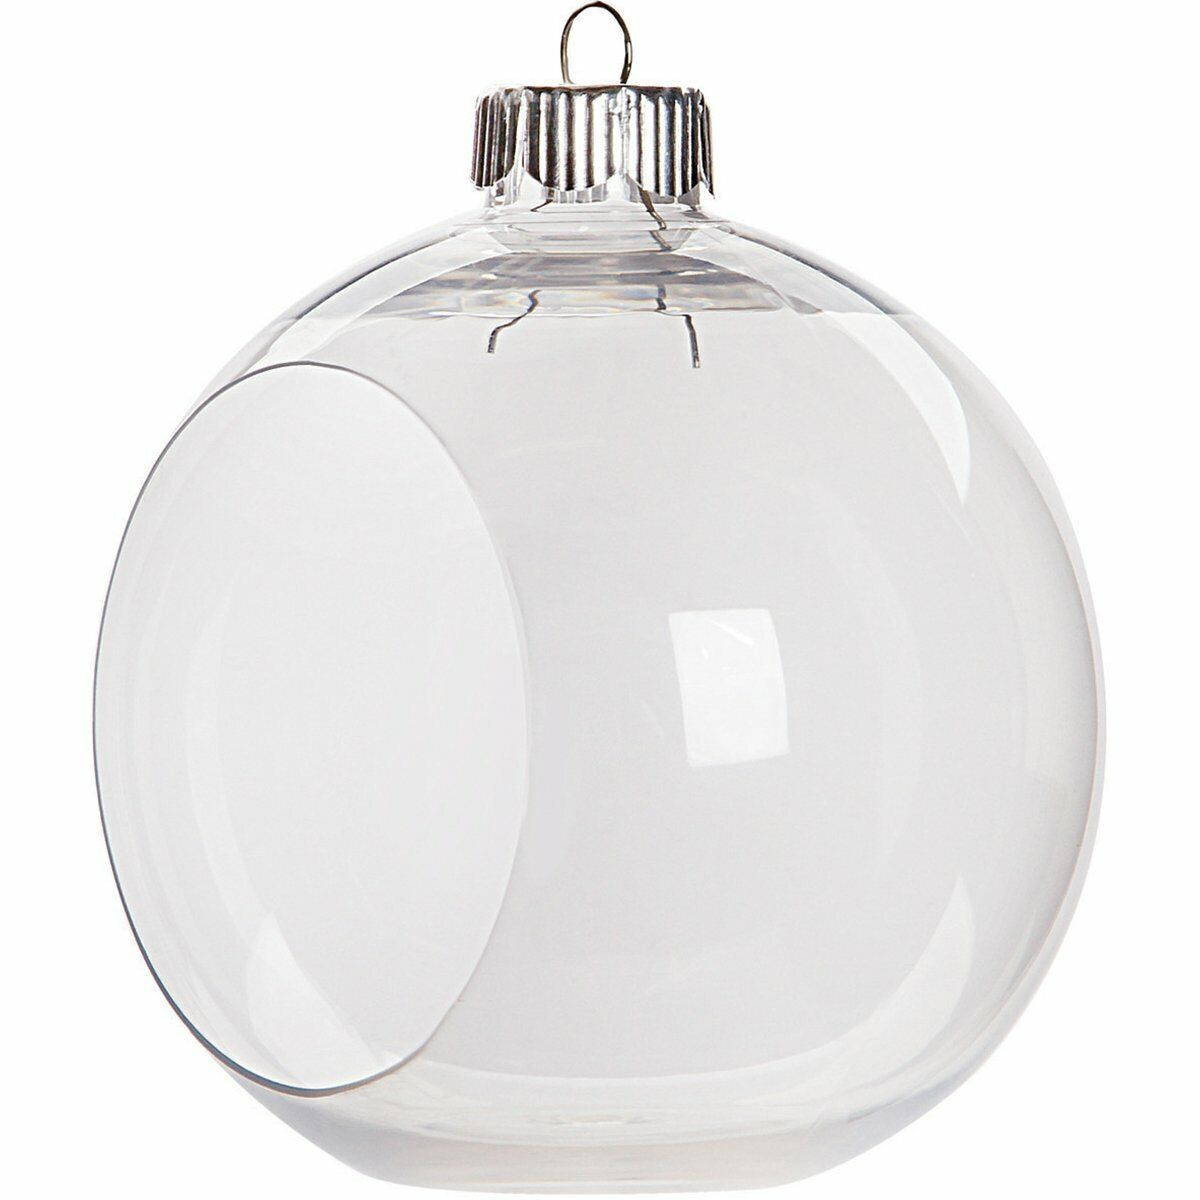 12 Clear Plastic Ornament Balls, 3.25 Inch (83 mm), Open Front Flat Bottom Holiday & Seasonal Décor